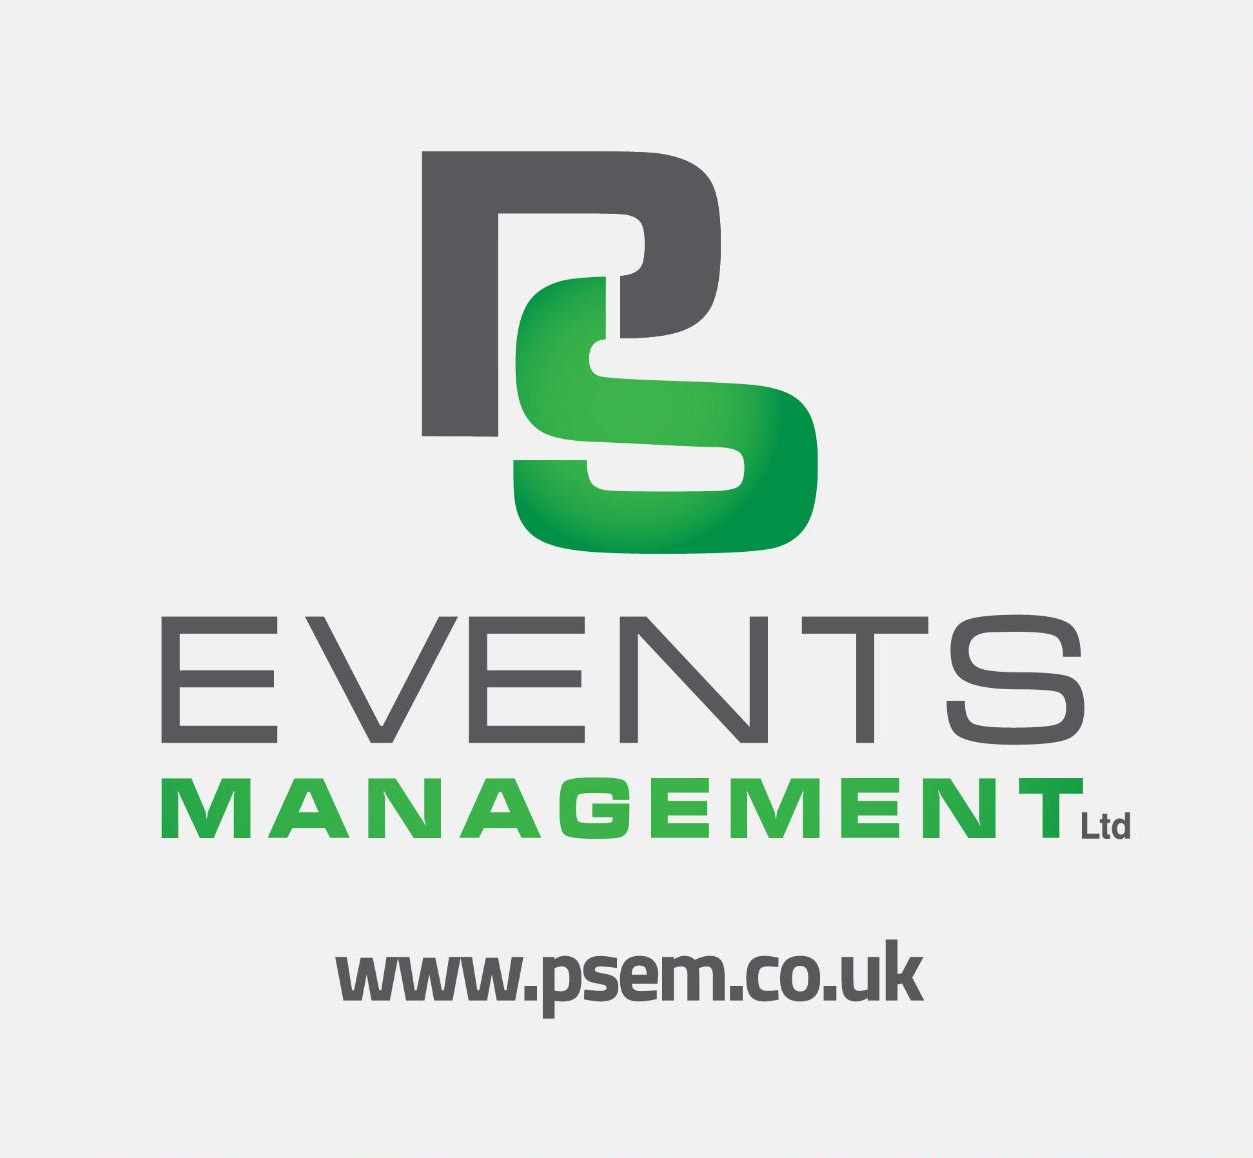 PS Event Management